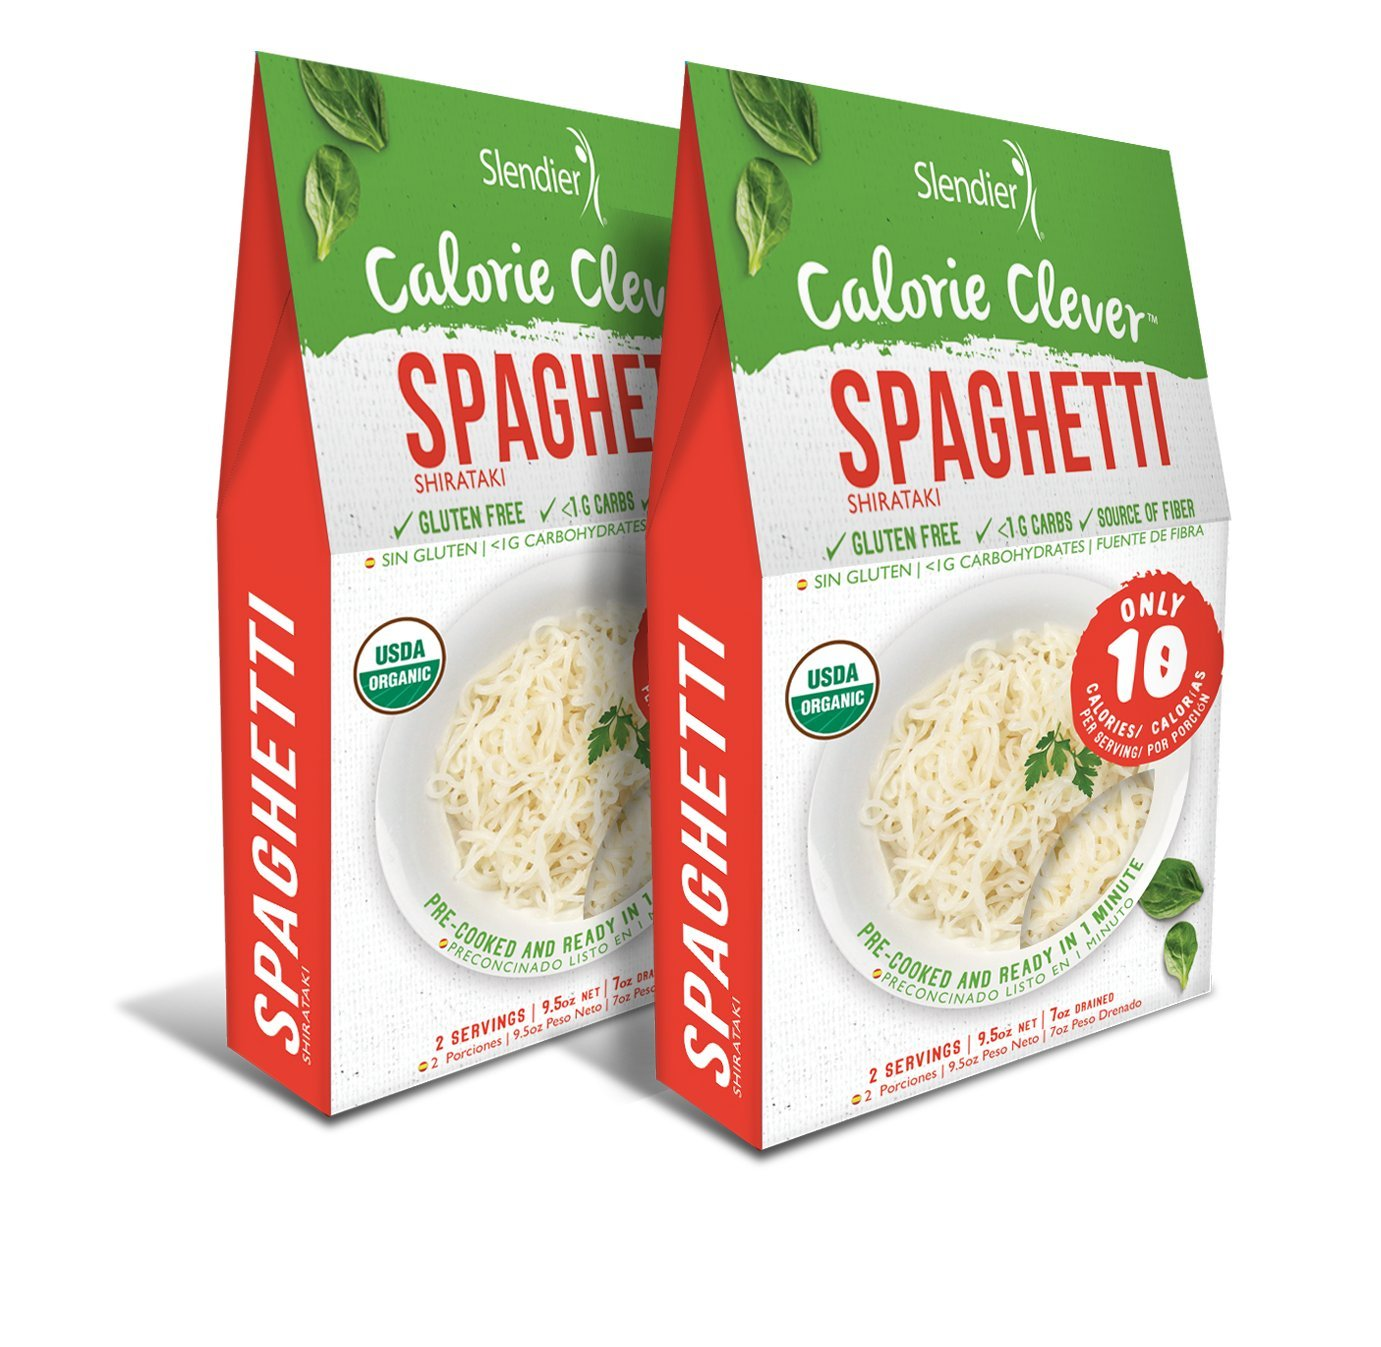 Amazon.com : Slendier Zero Carb, Low Calorie, Gluten Free, Certified Organic, Vegan, Shirataki Spaghetti Style pasta (7oz) (Pack of 6) : Grocery & Gourmet ...